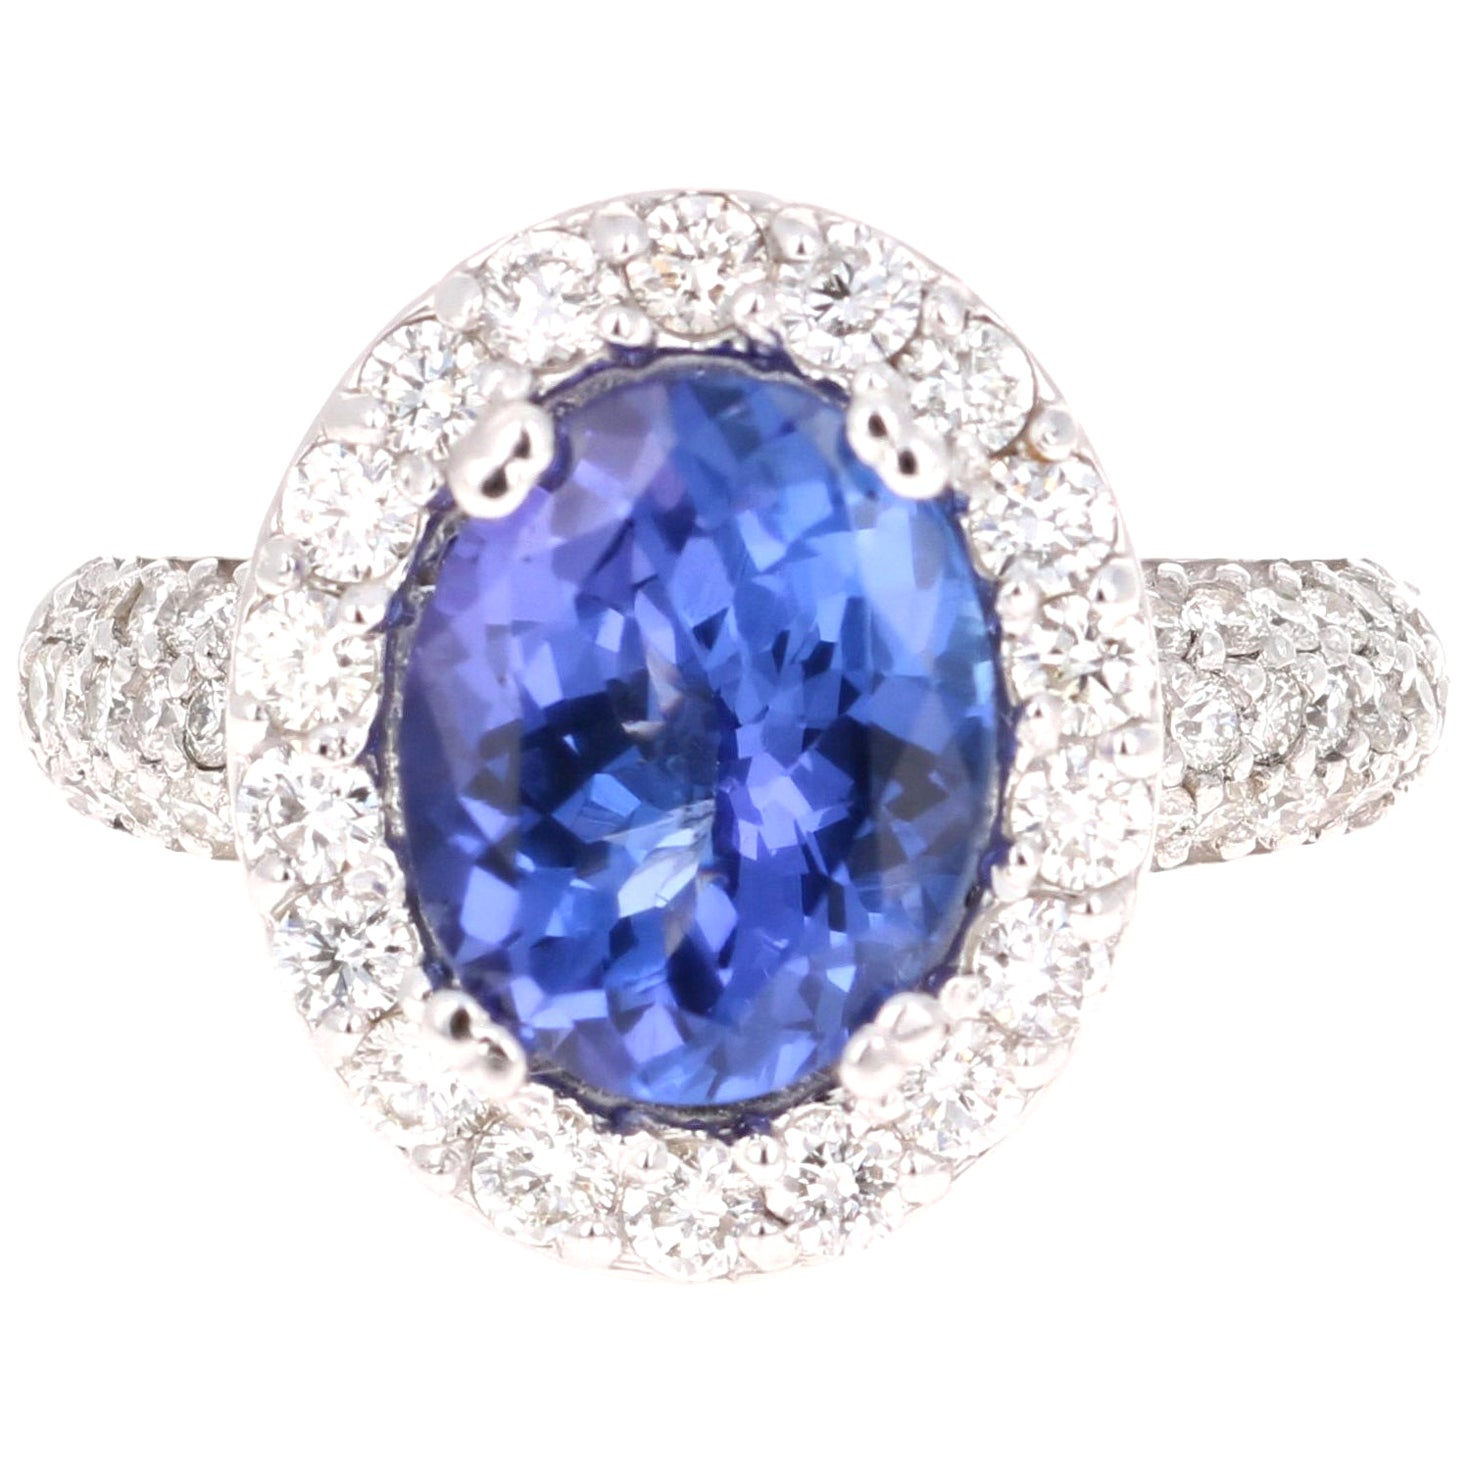 4.34 Carat Tanzanite Diamond 14 Karat White Gold Ring